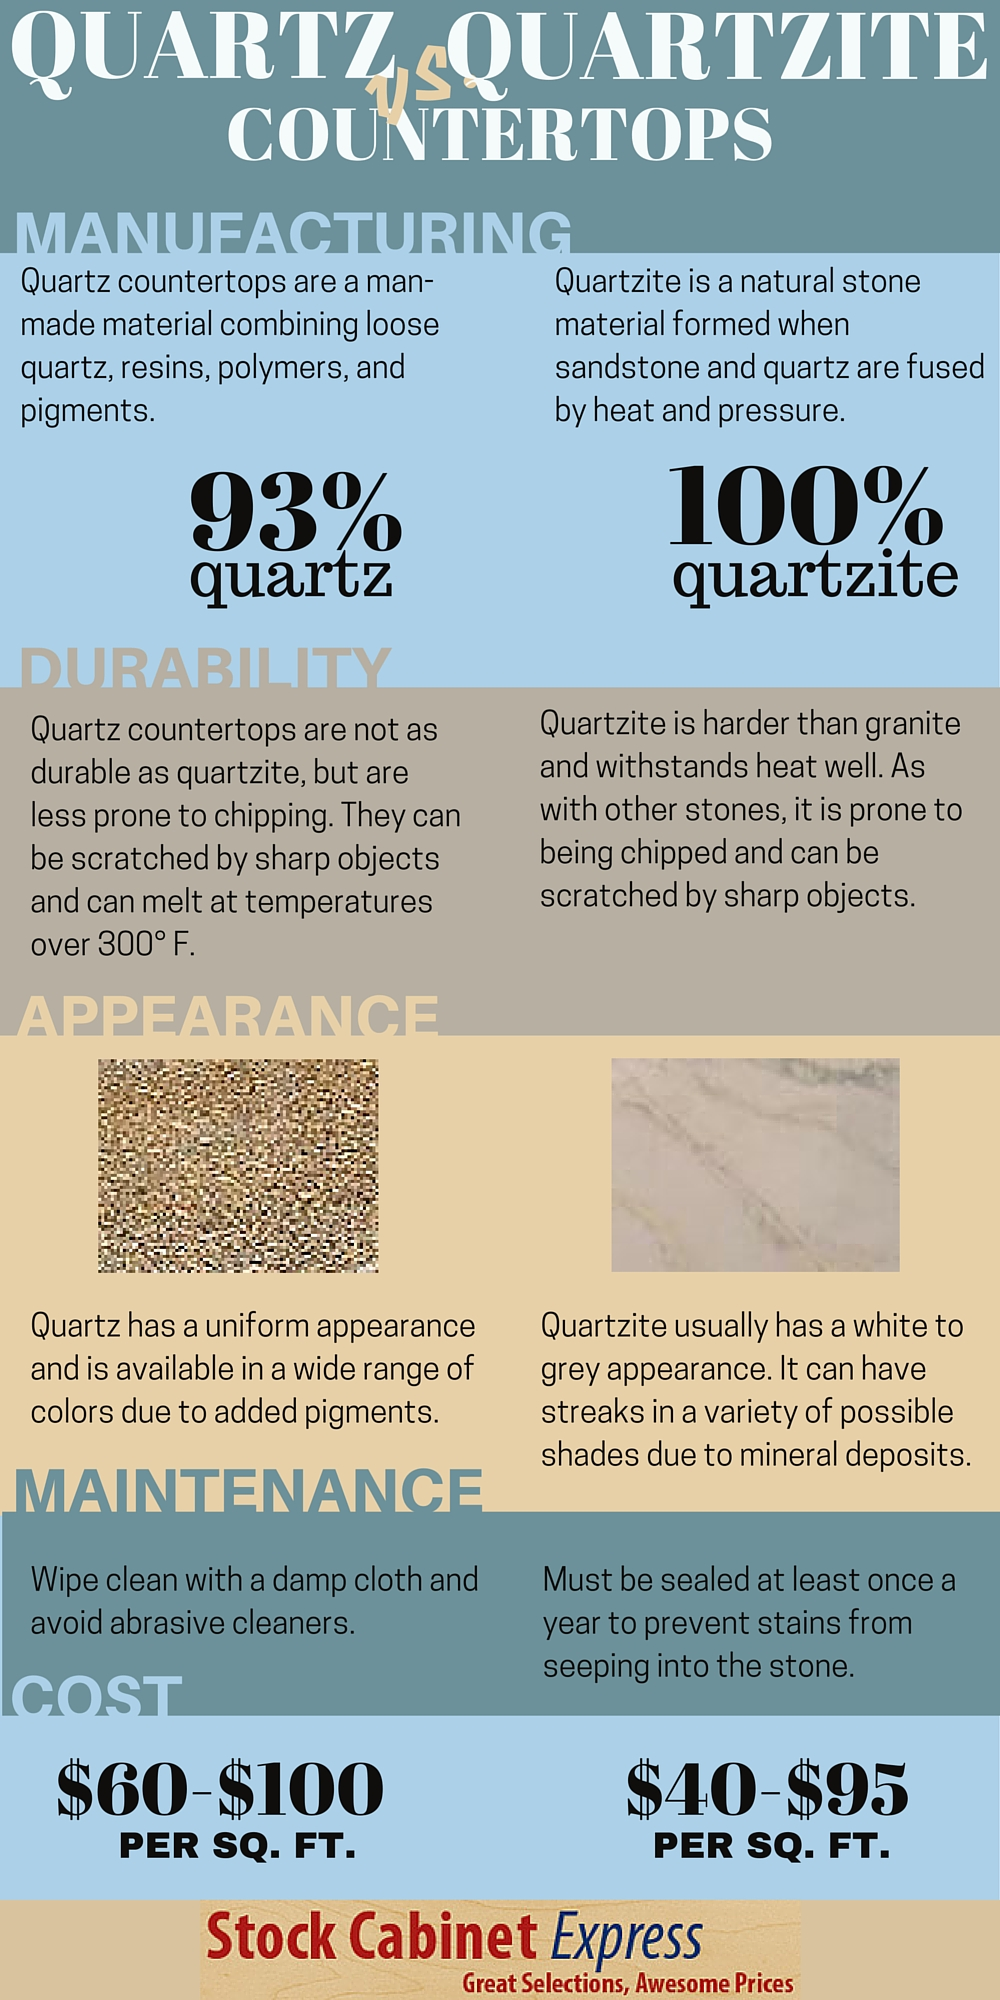 Quartz Vs Quartzite